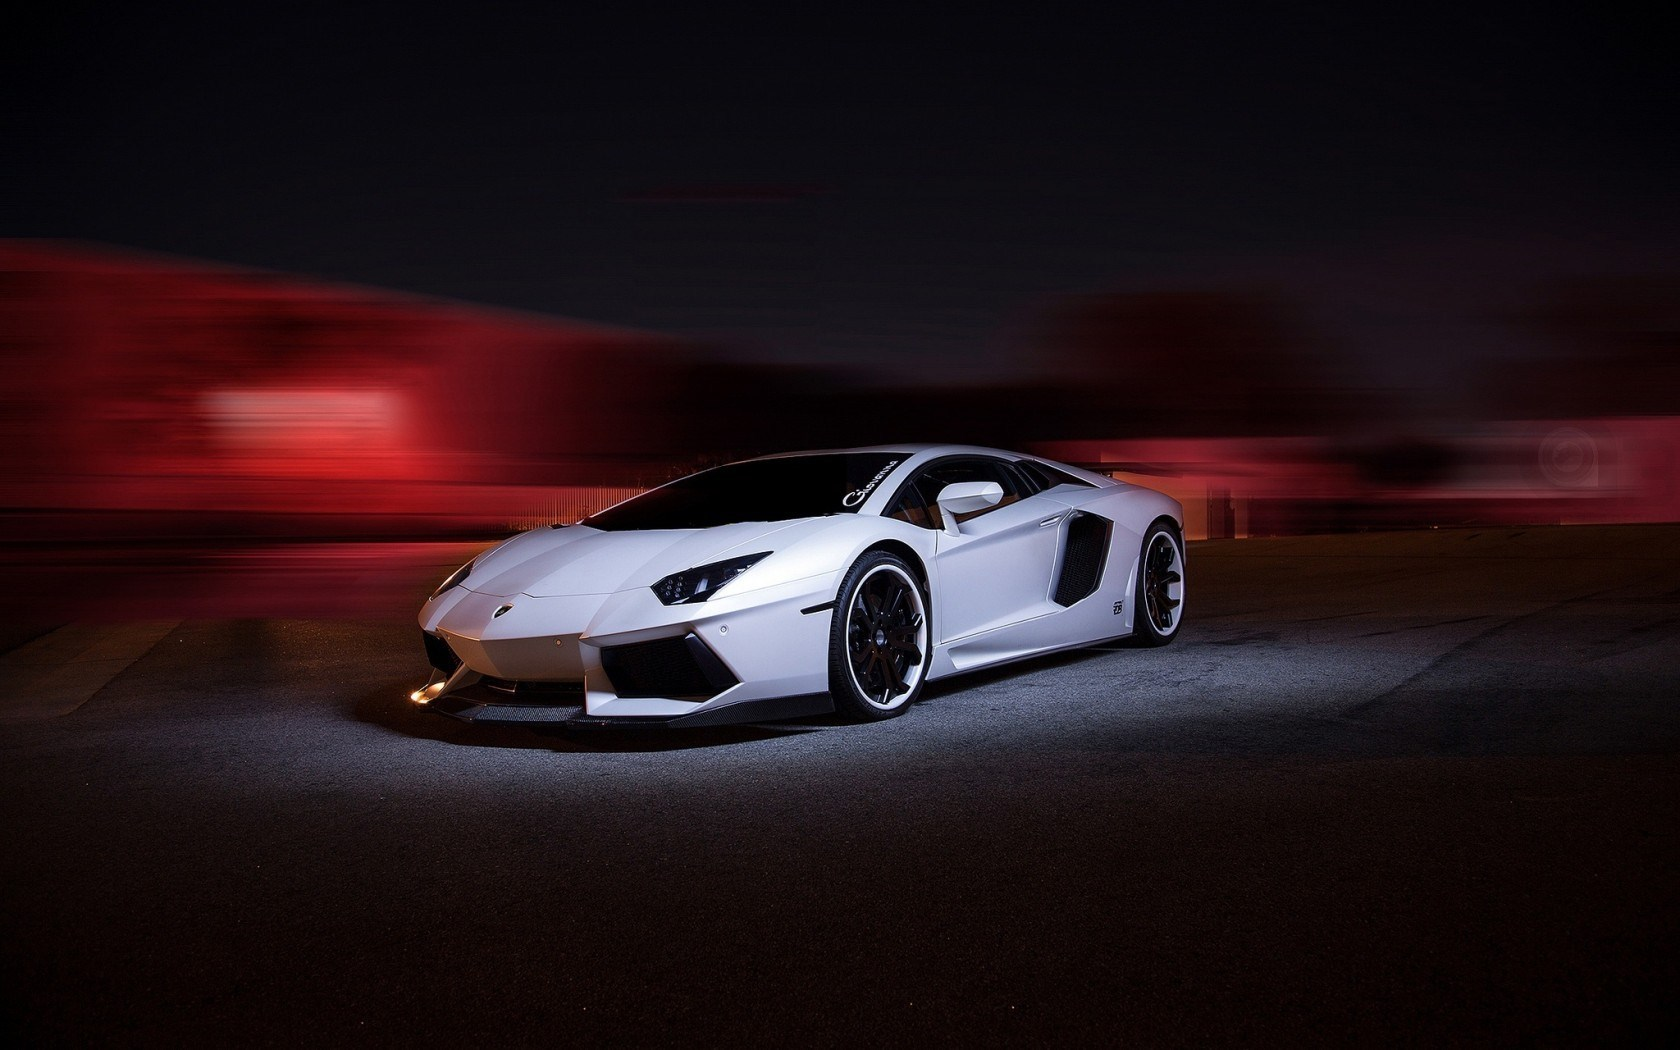 Lamborghini Aventador LP700-4 Tuning Light Blur